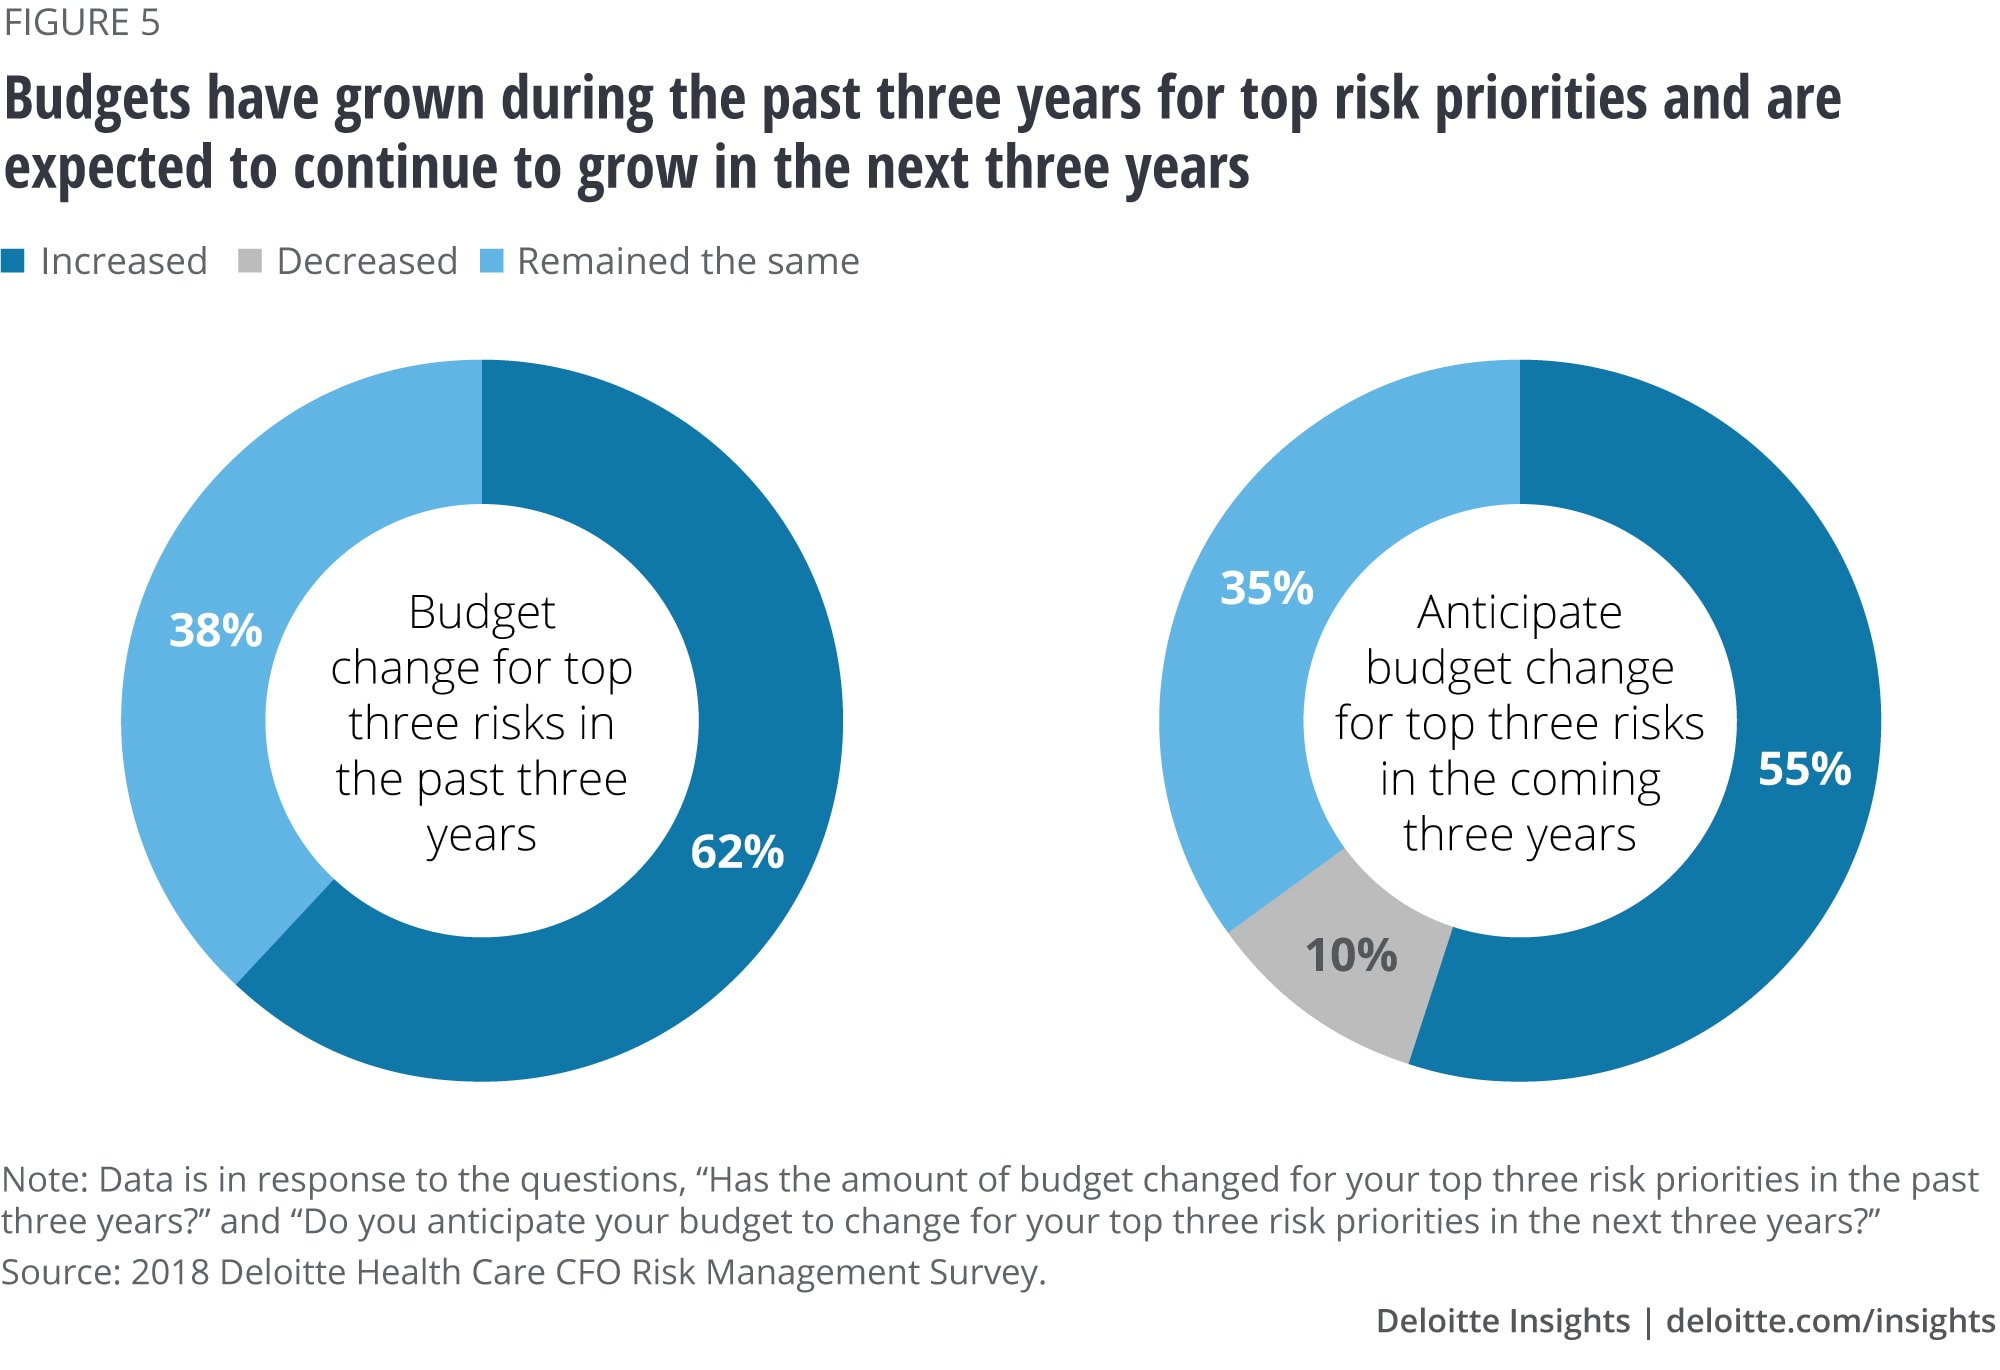 Budgets have grown during the past three years for top risk priorities and are expected to continue to grow in the next three years